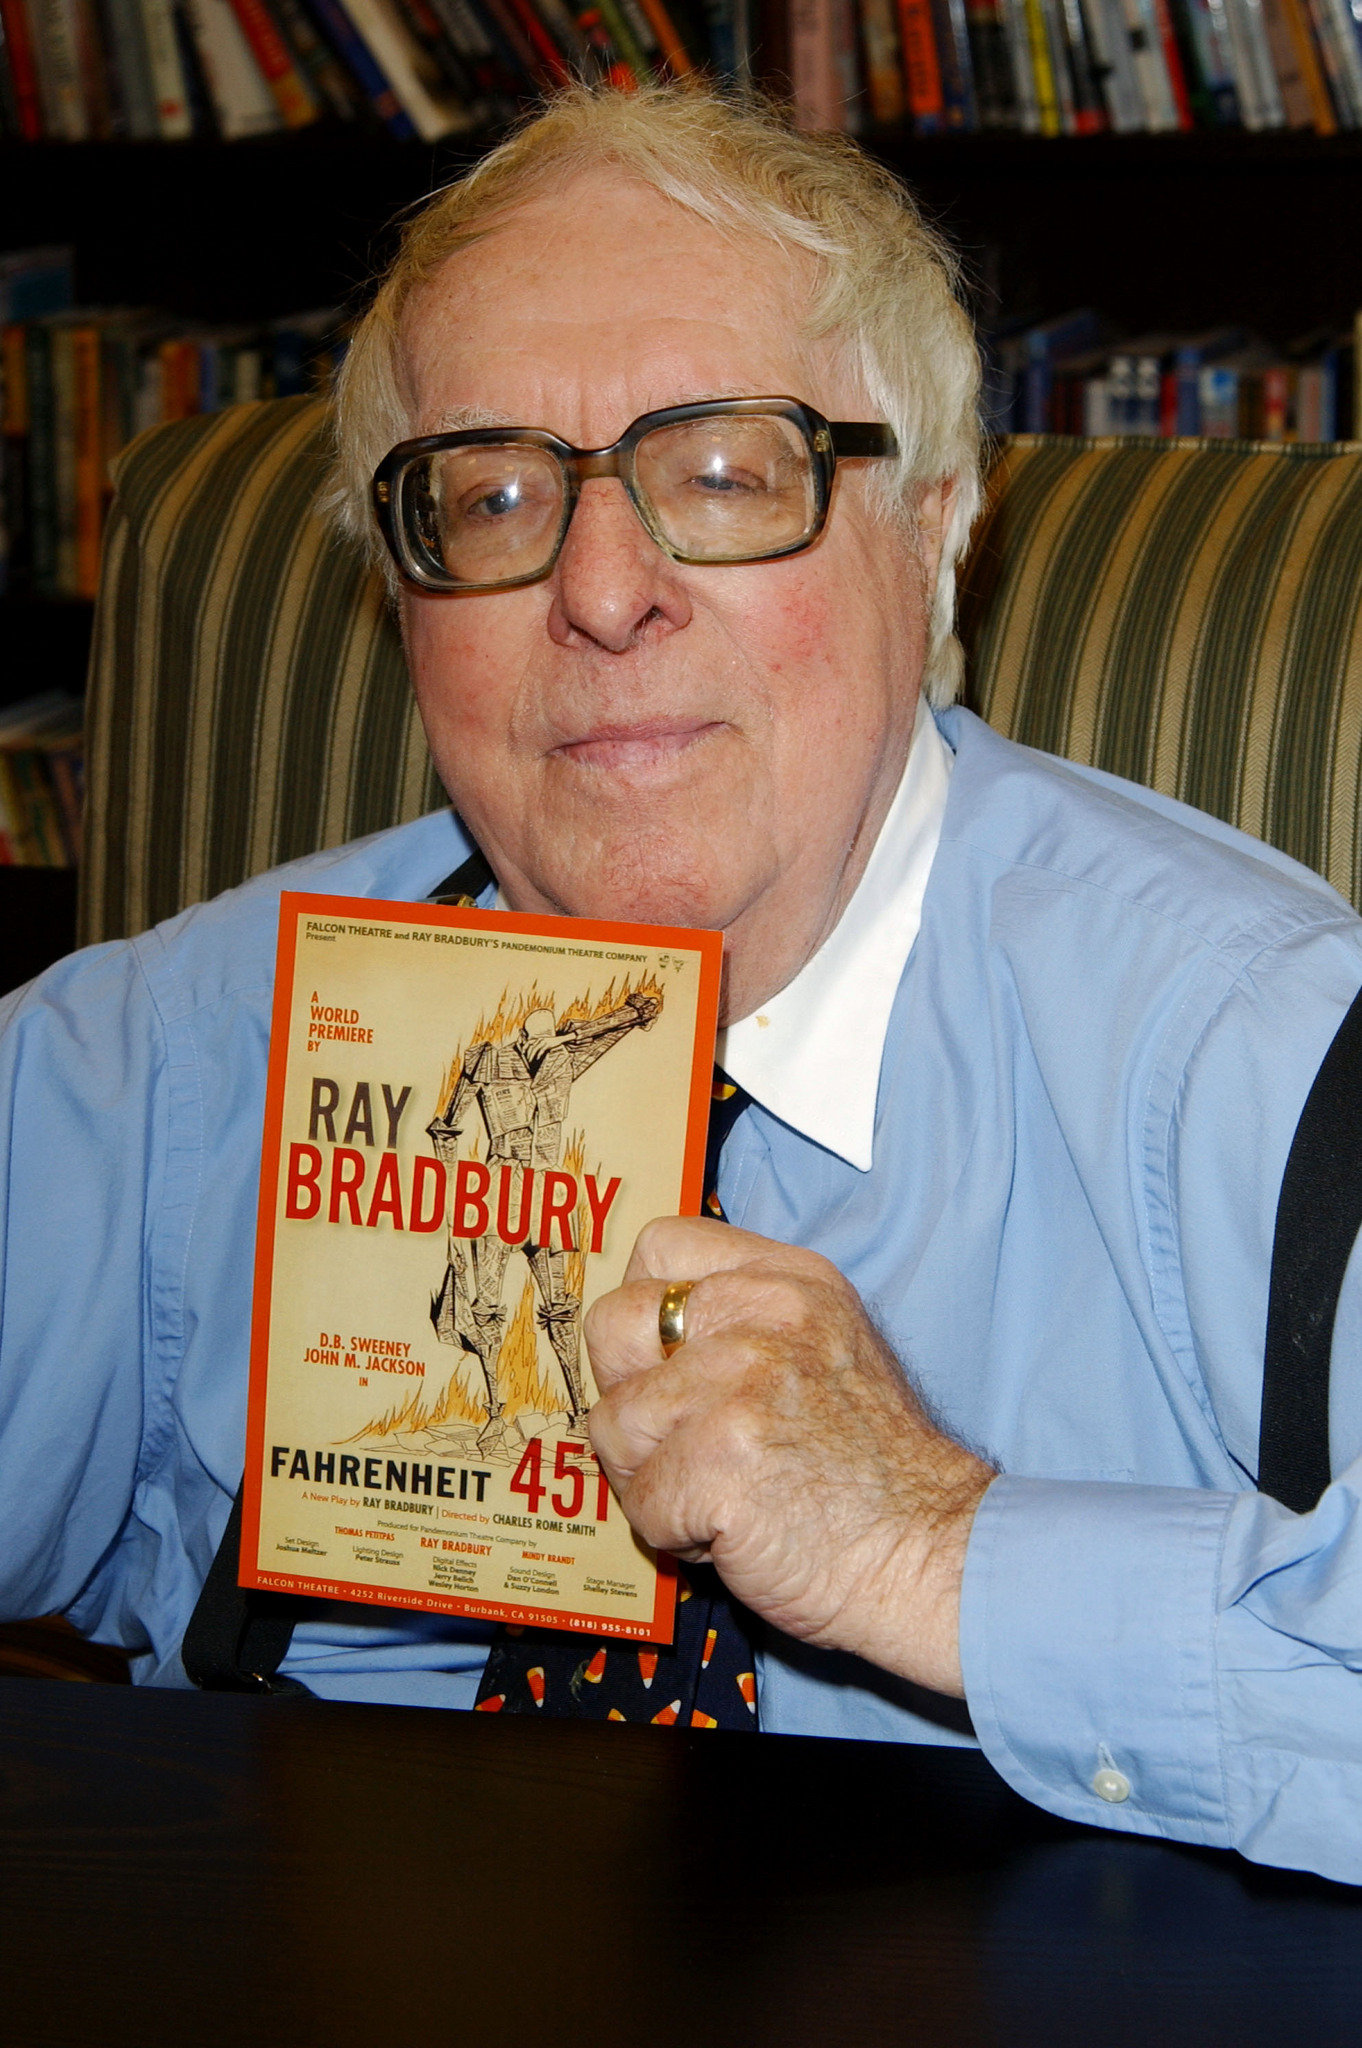 an introduction to the life of ray bradbury Get information, facts, and pictures about ray bradbury at encyclopediacom make research projects and school reports about ray bradbury easy with credible articles.